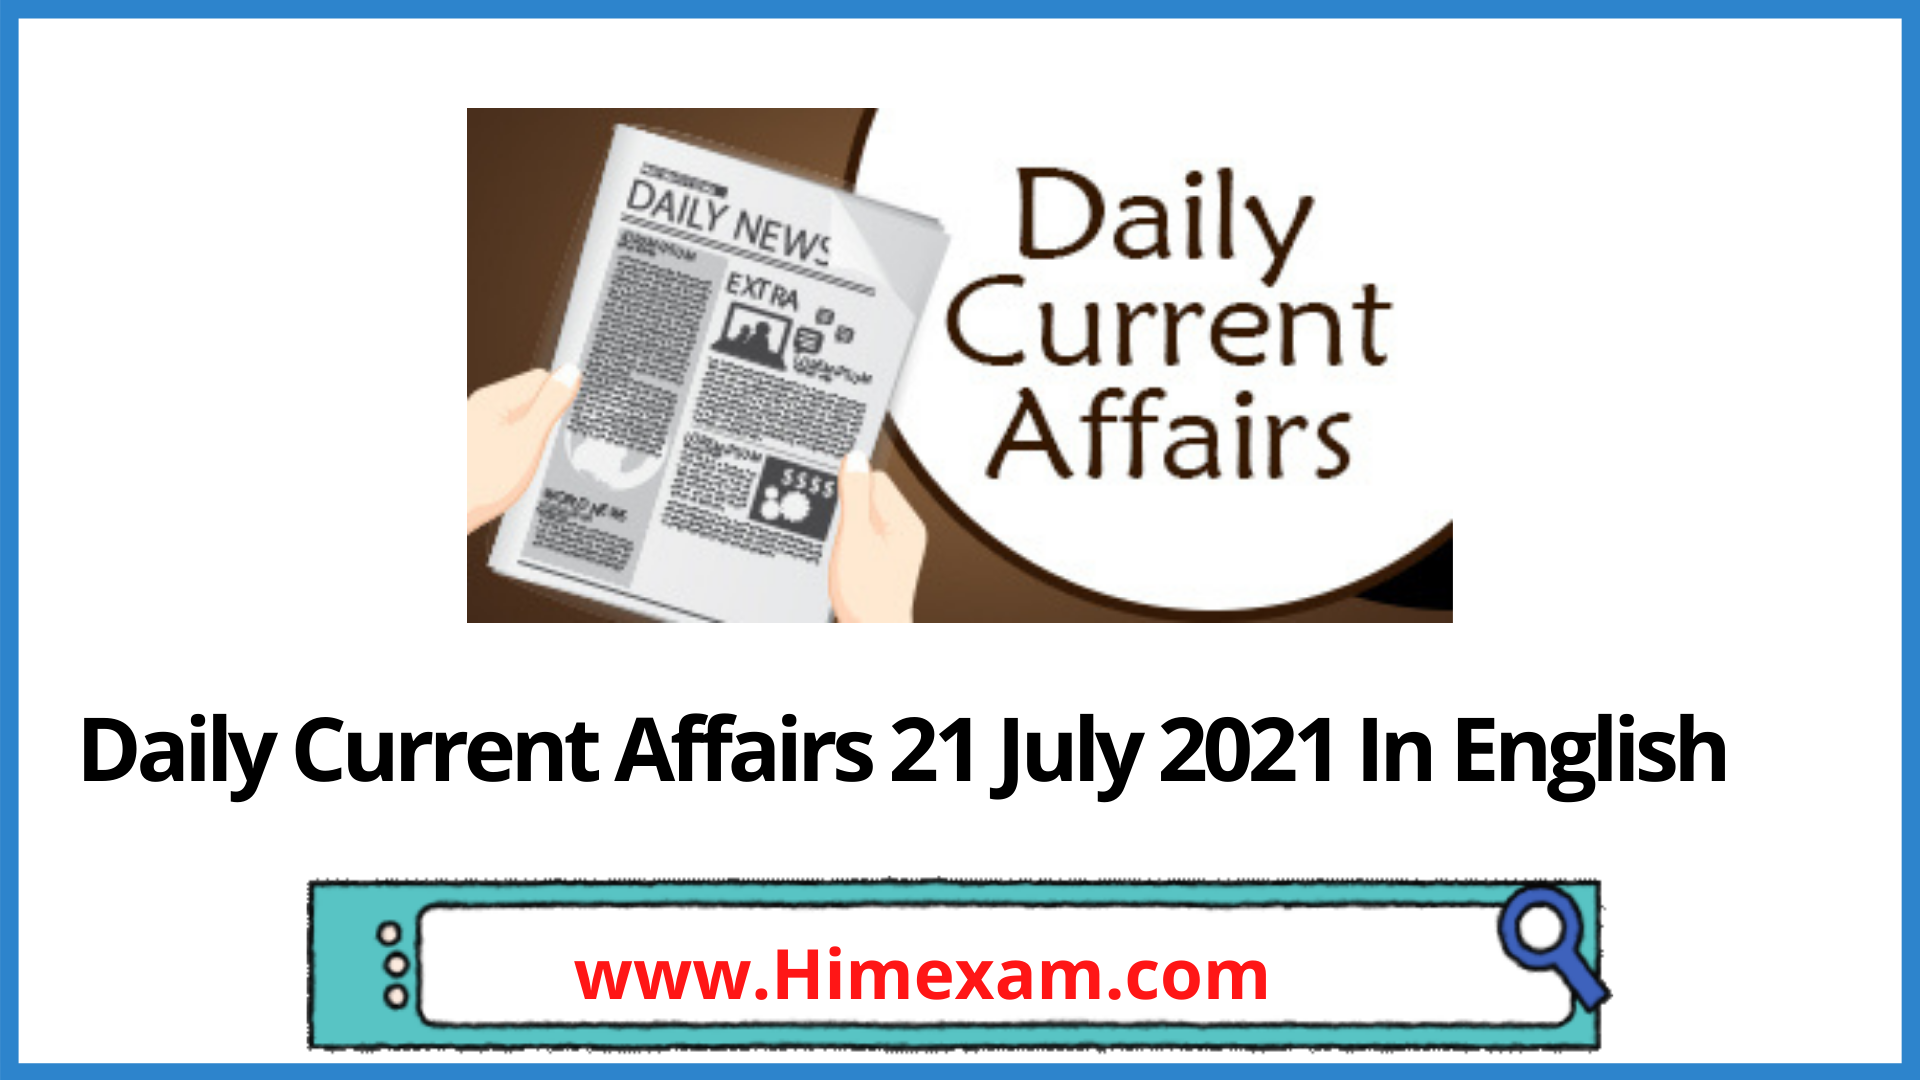 Daily Current Affairs 21 July 2021 In English